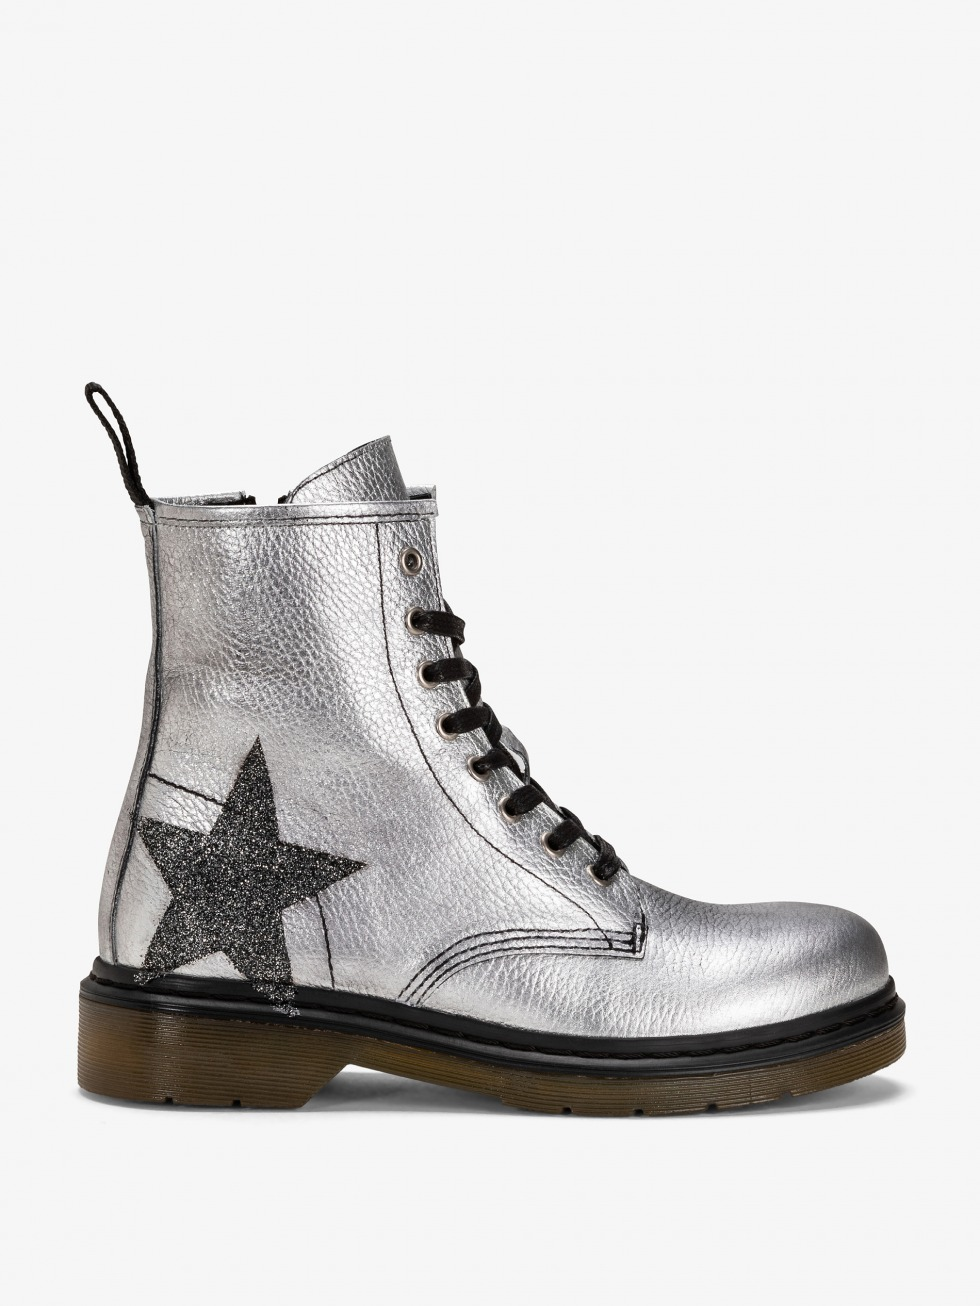 Bloody Mary Boots - Space Glitter Star